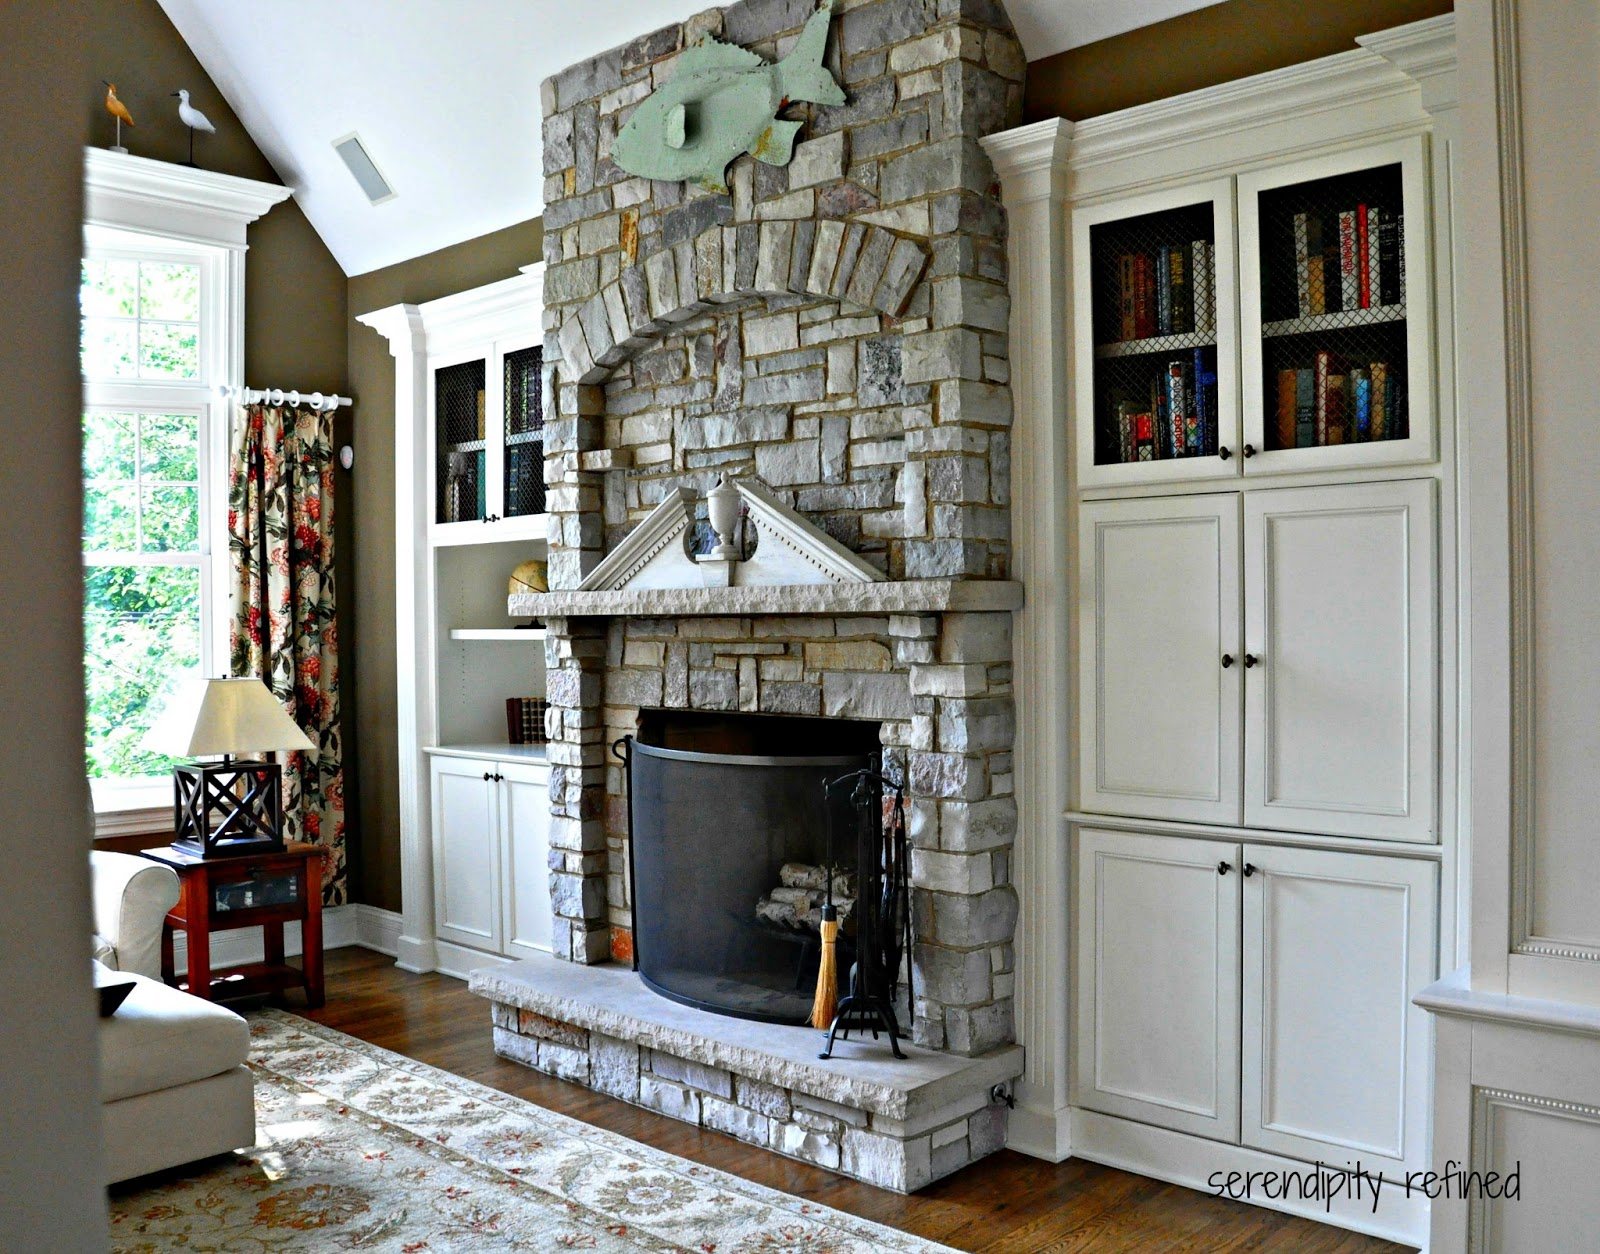 Serendipity Refined Blog: Family Room Reveal: Coastal or ...